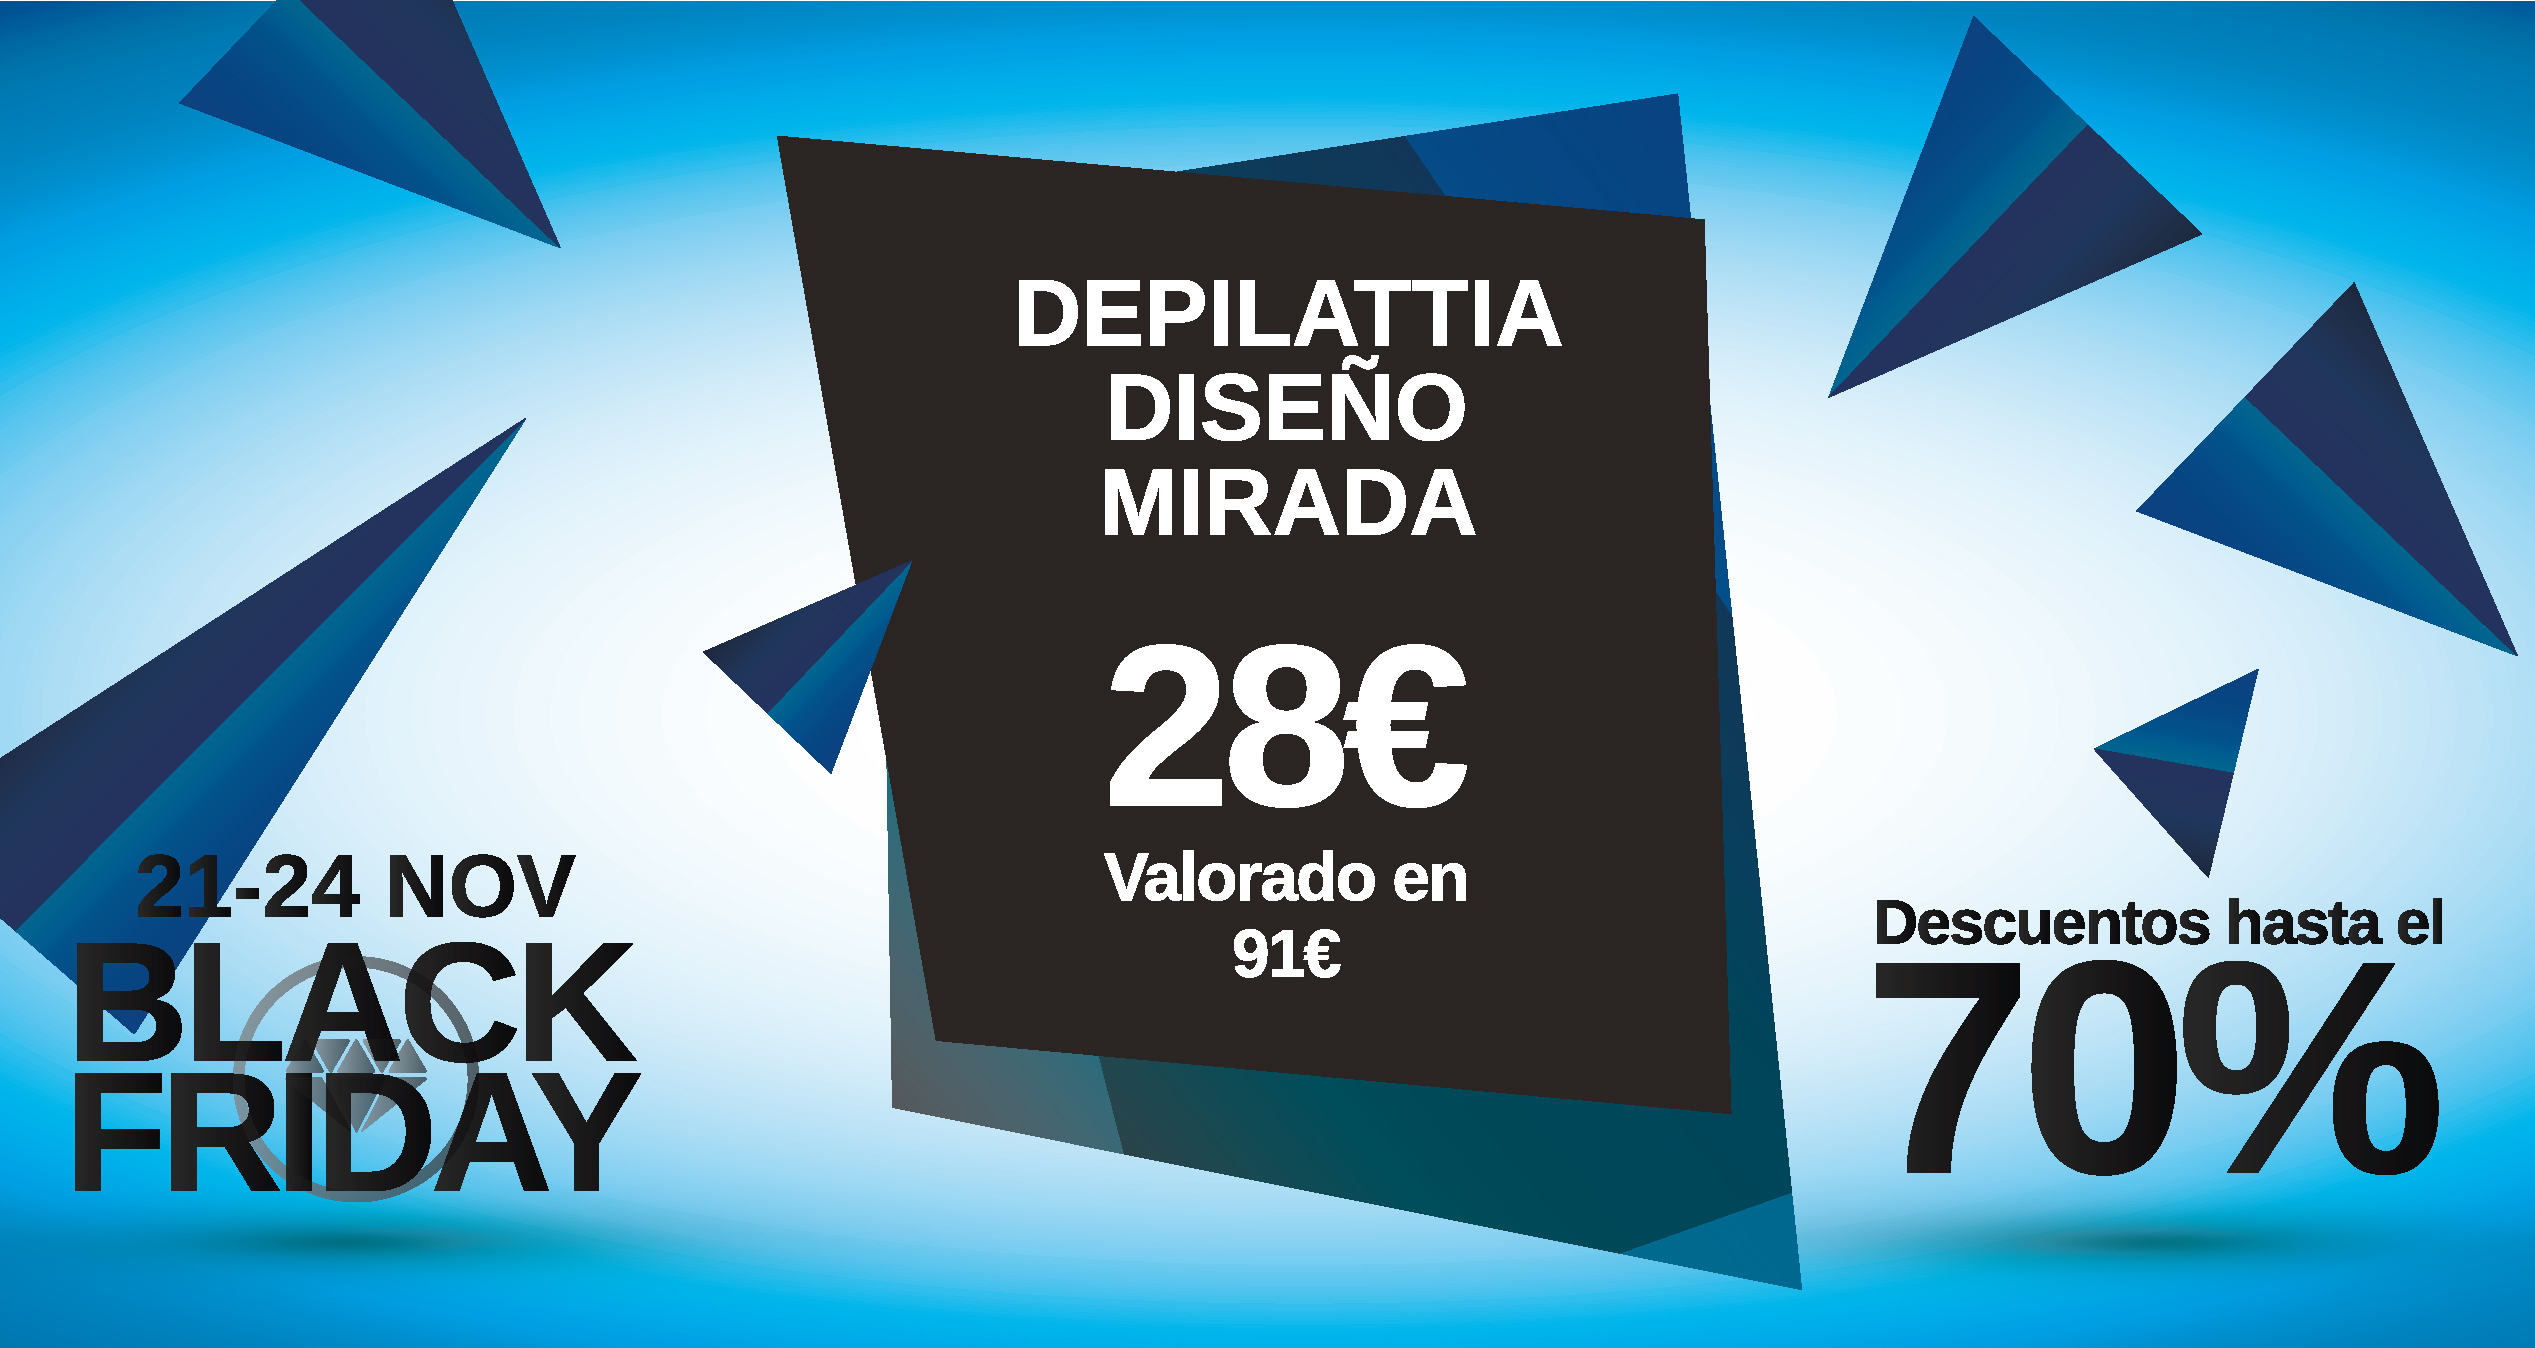 AAFF-Black-friday-depilattia-spa_mirada-FACEBOOK